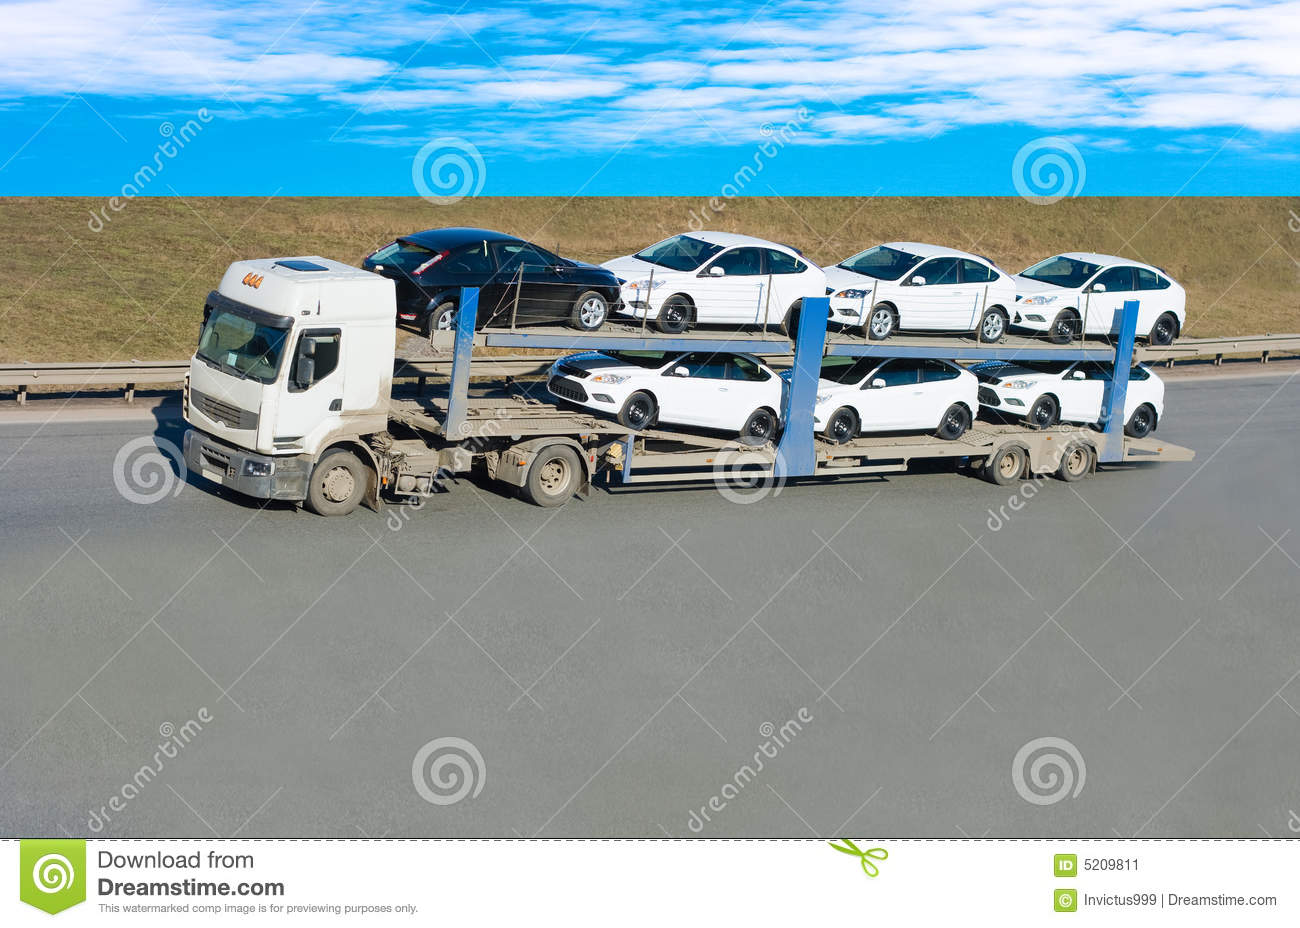 Car Carrier Truck Stock Image - Image: 5209811